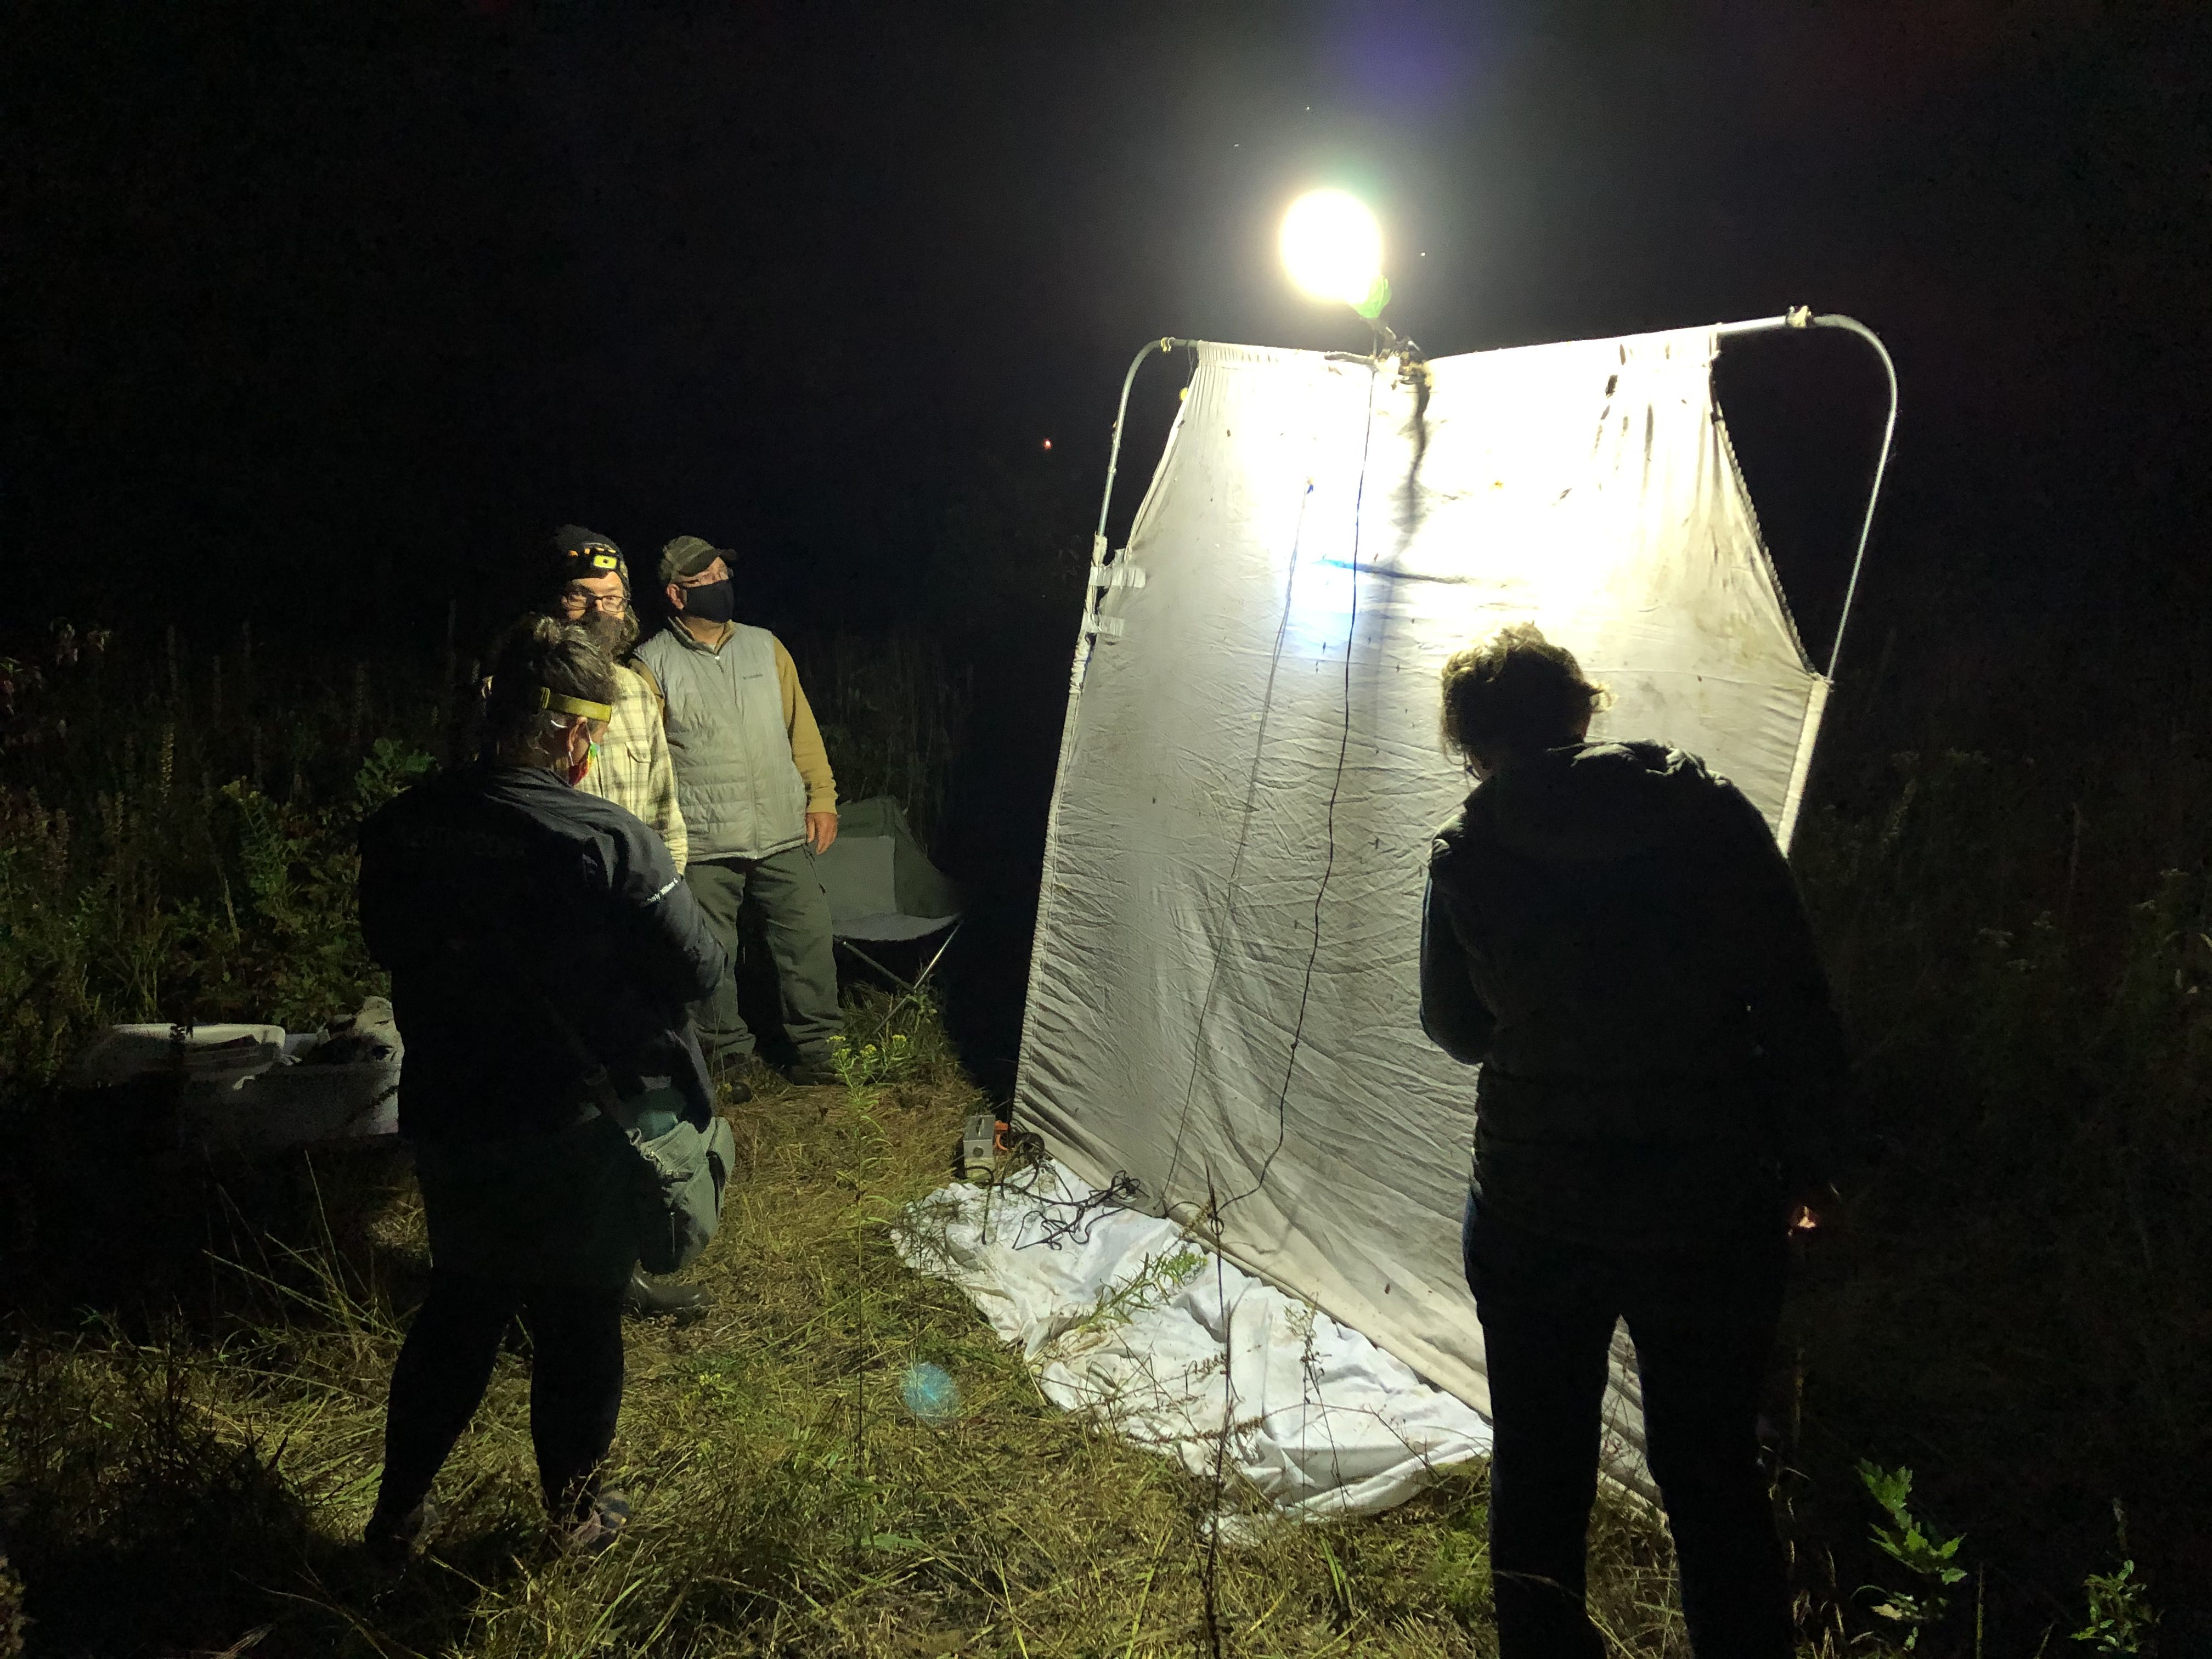 Four people stand in the dark around a white sheet, a light shines down on the sheet, attracting insects.